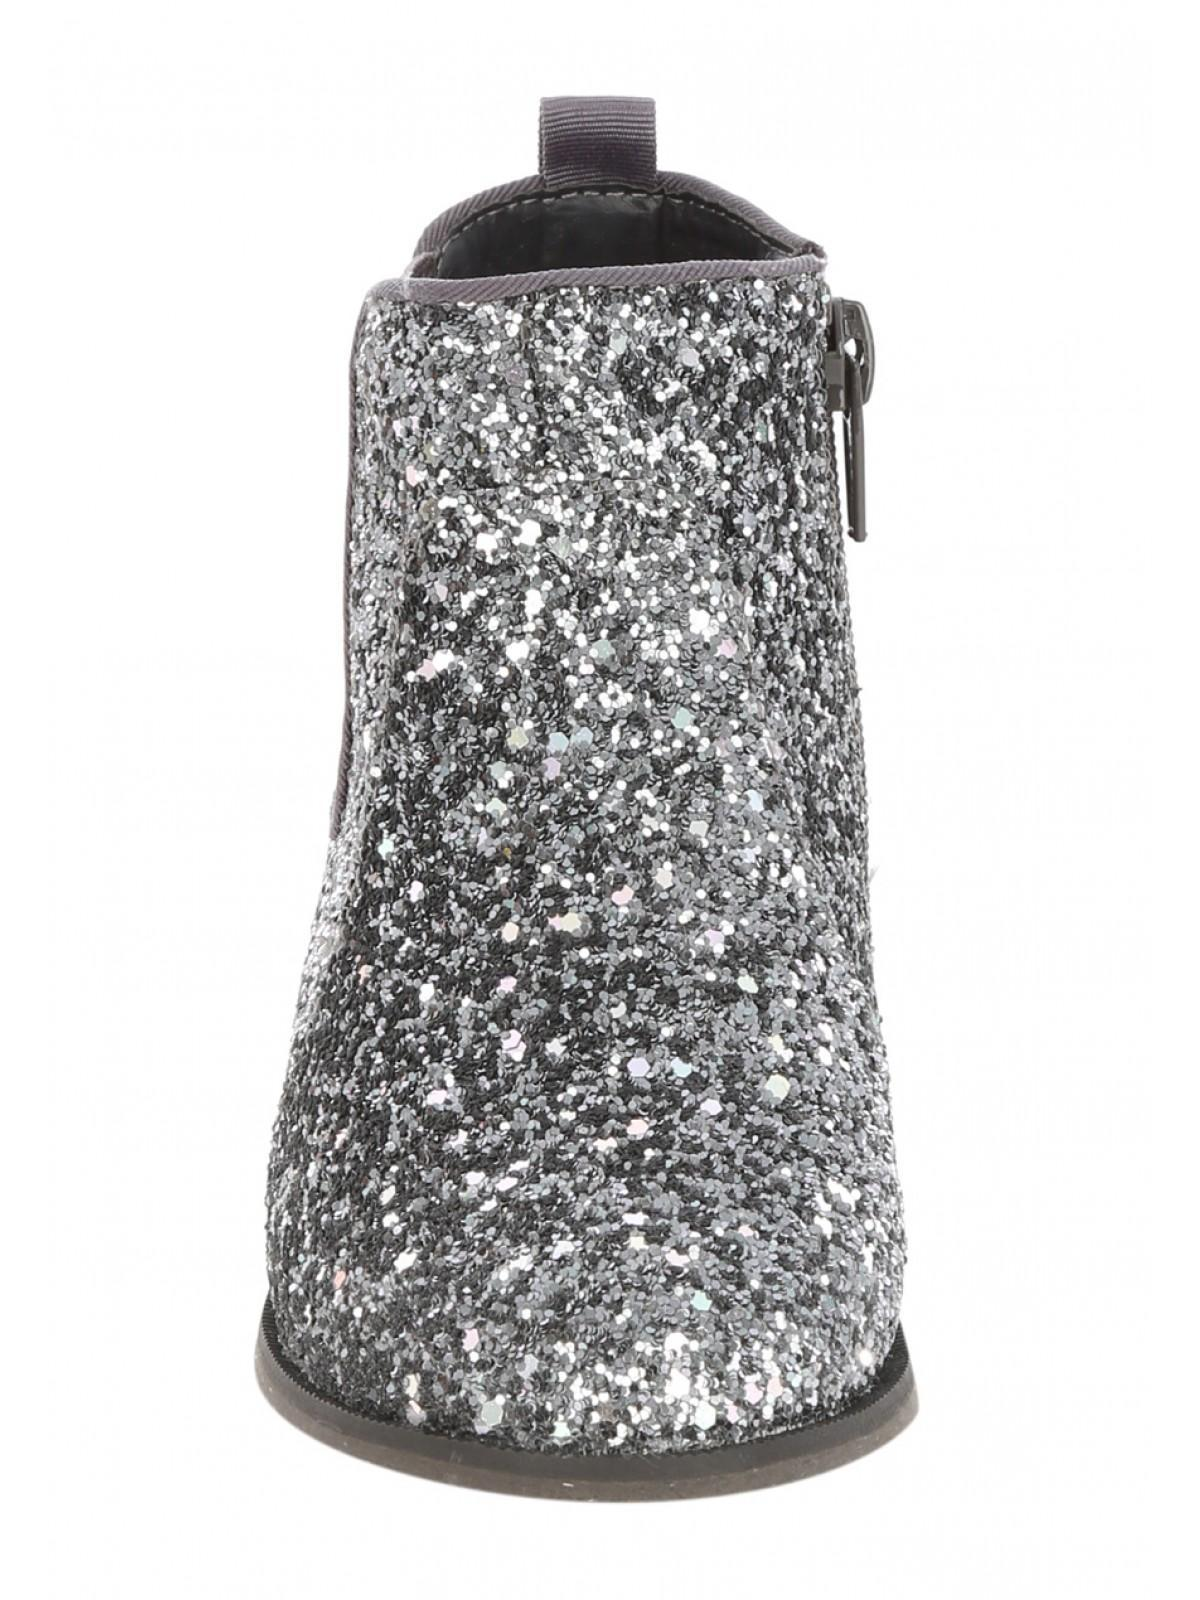 Girls Younger Girls Glitter Chelsea Boots | Peacocks